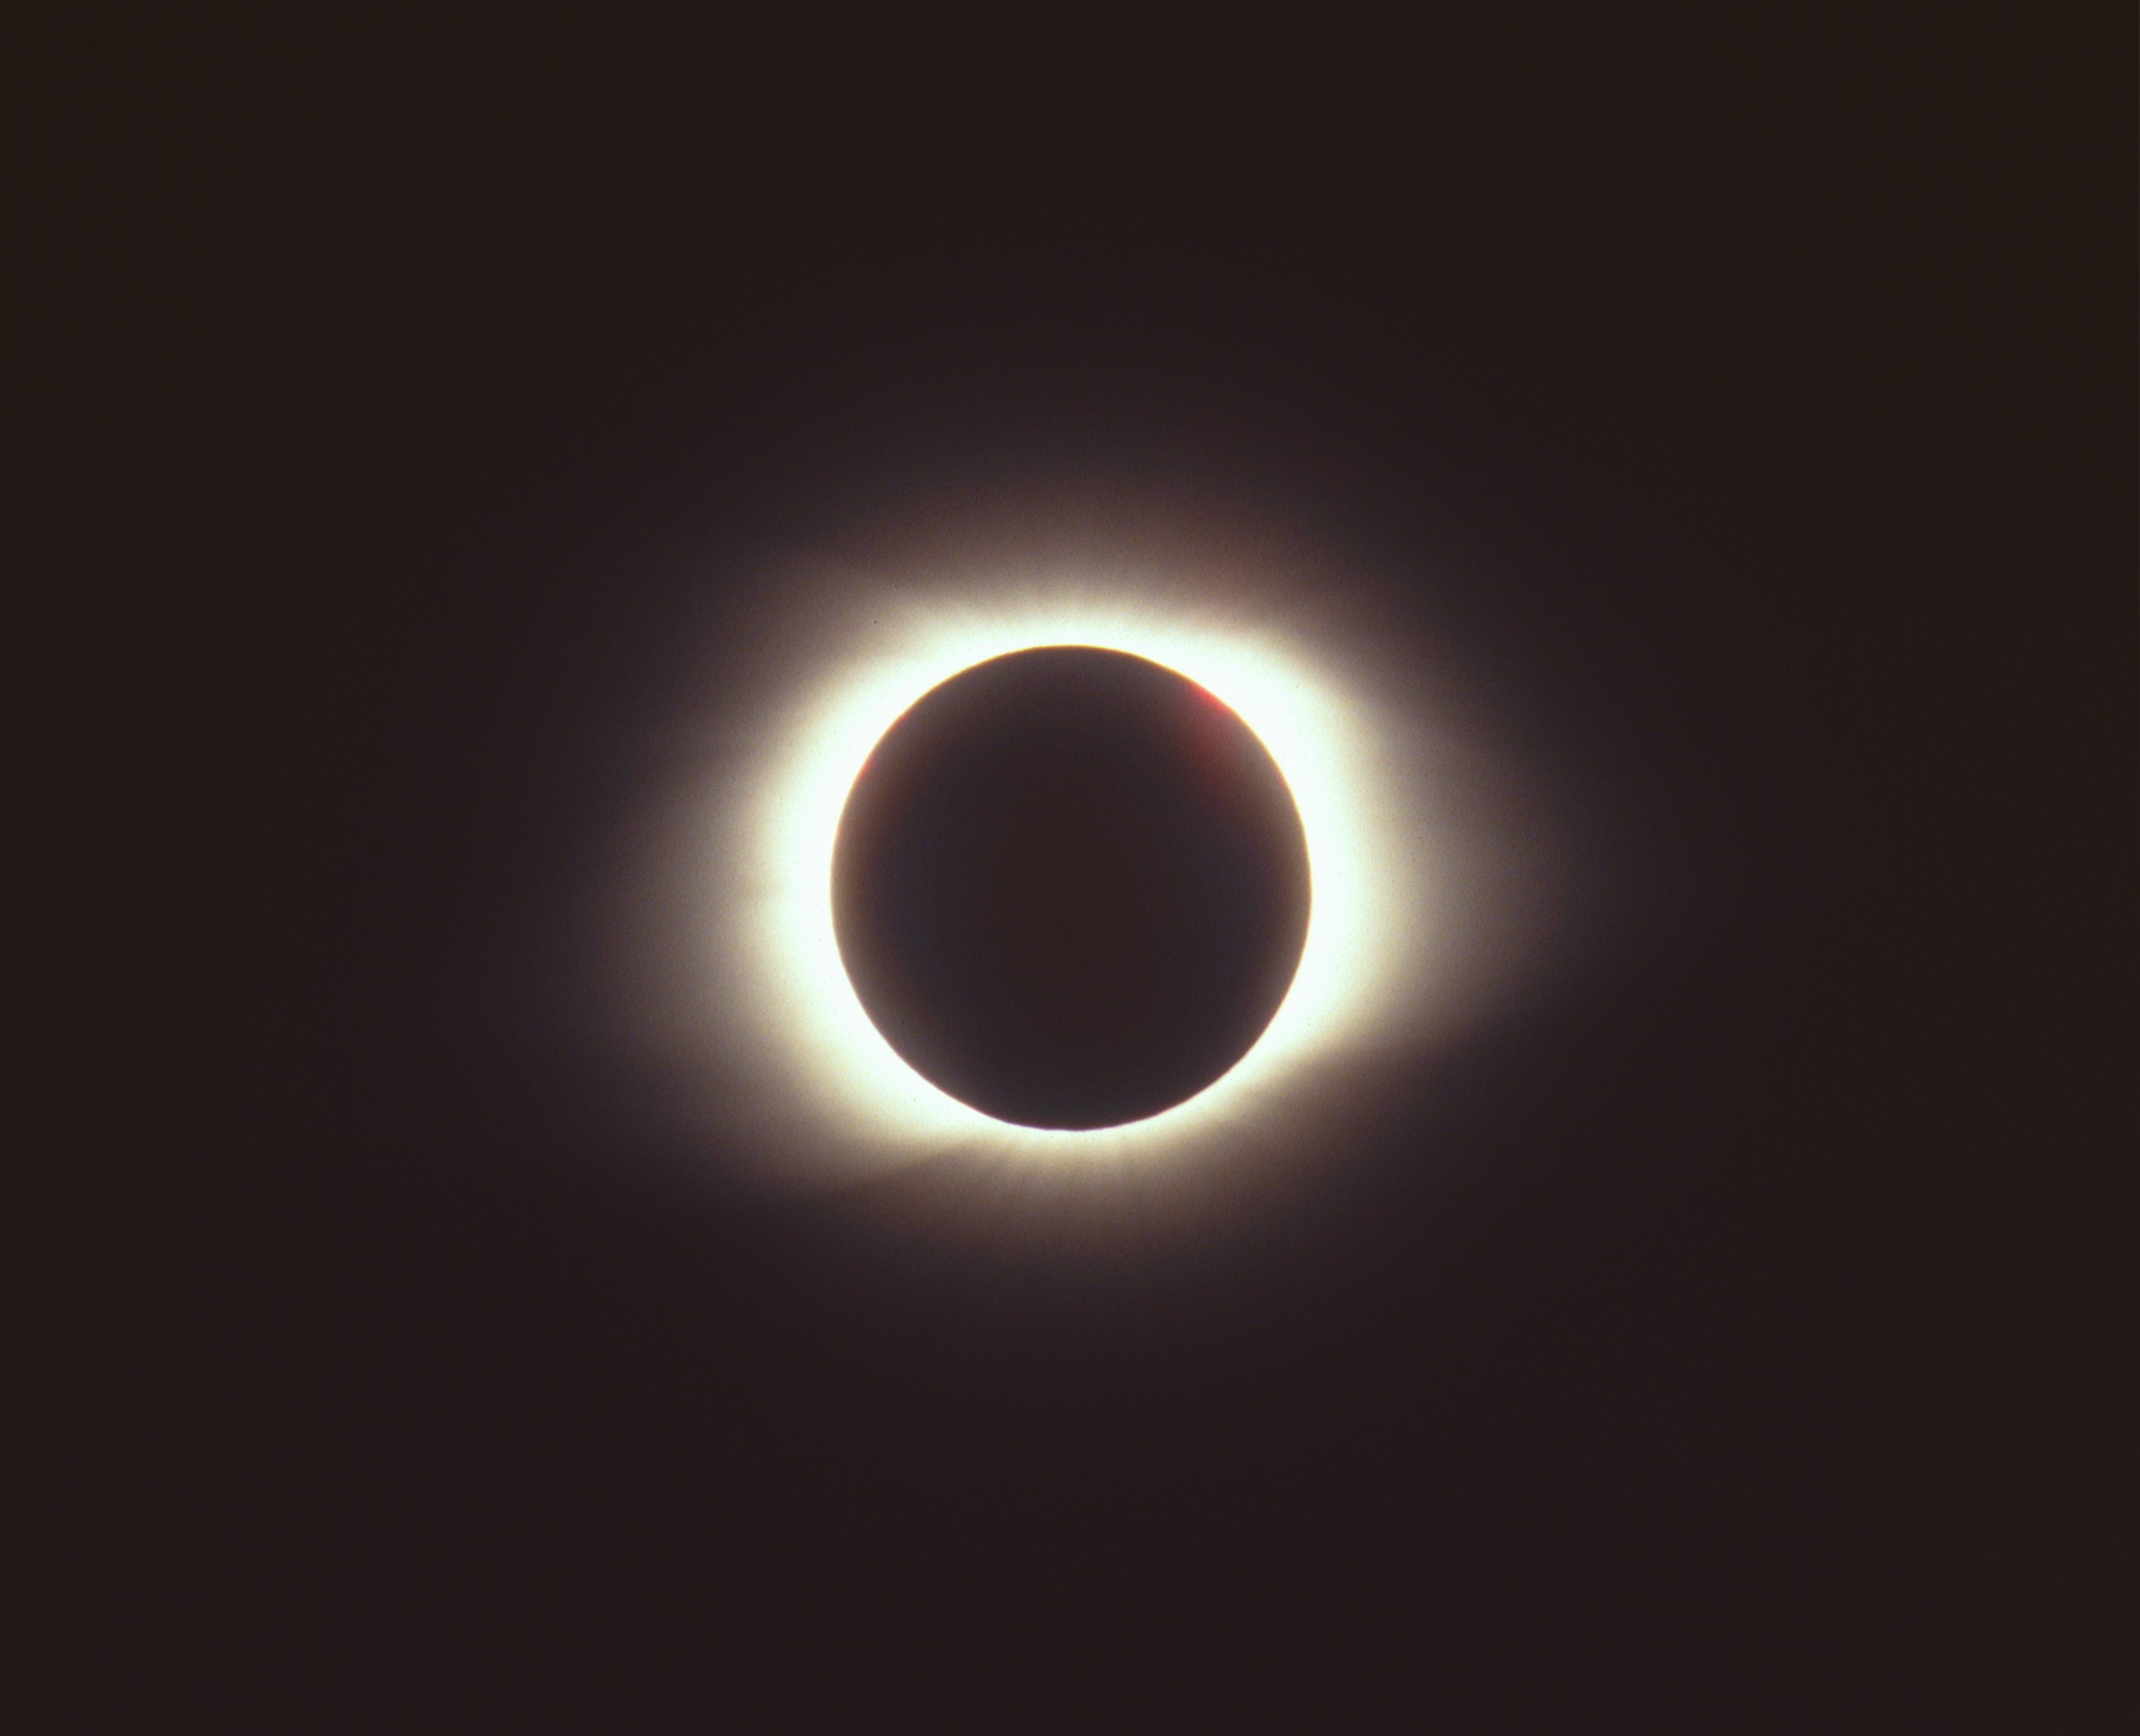 Events during the eclipse